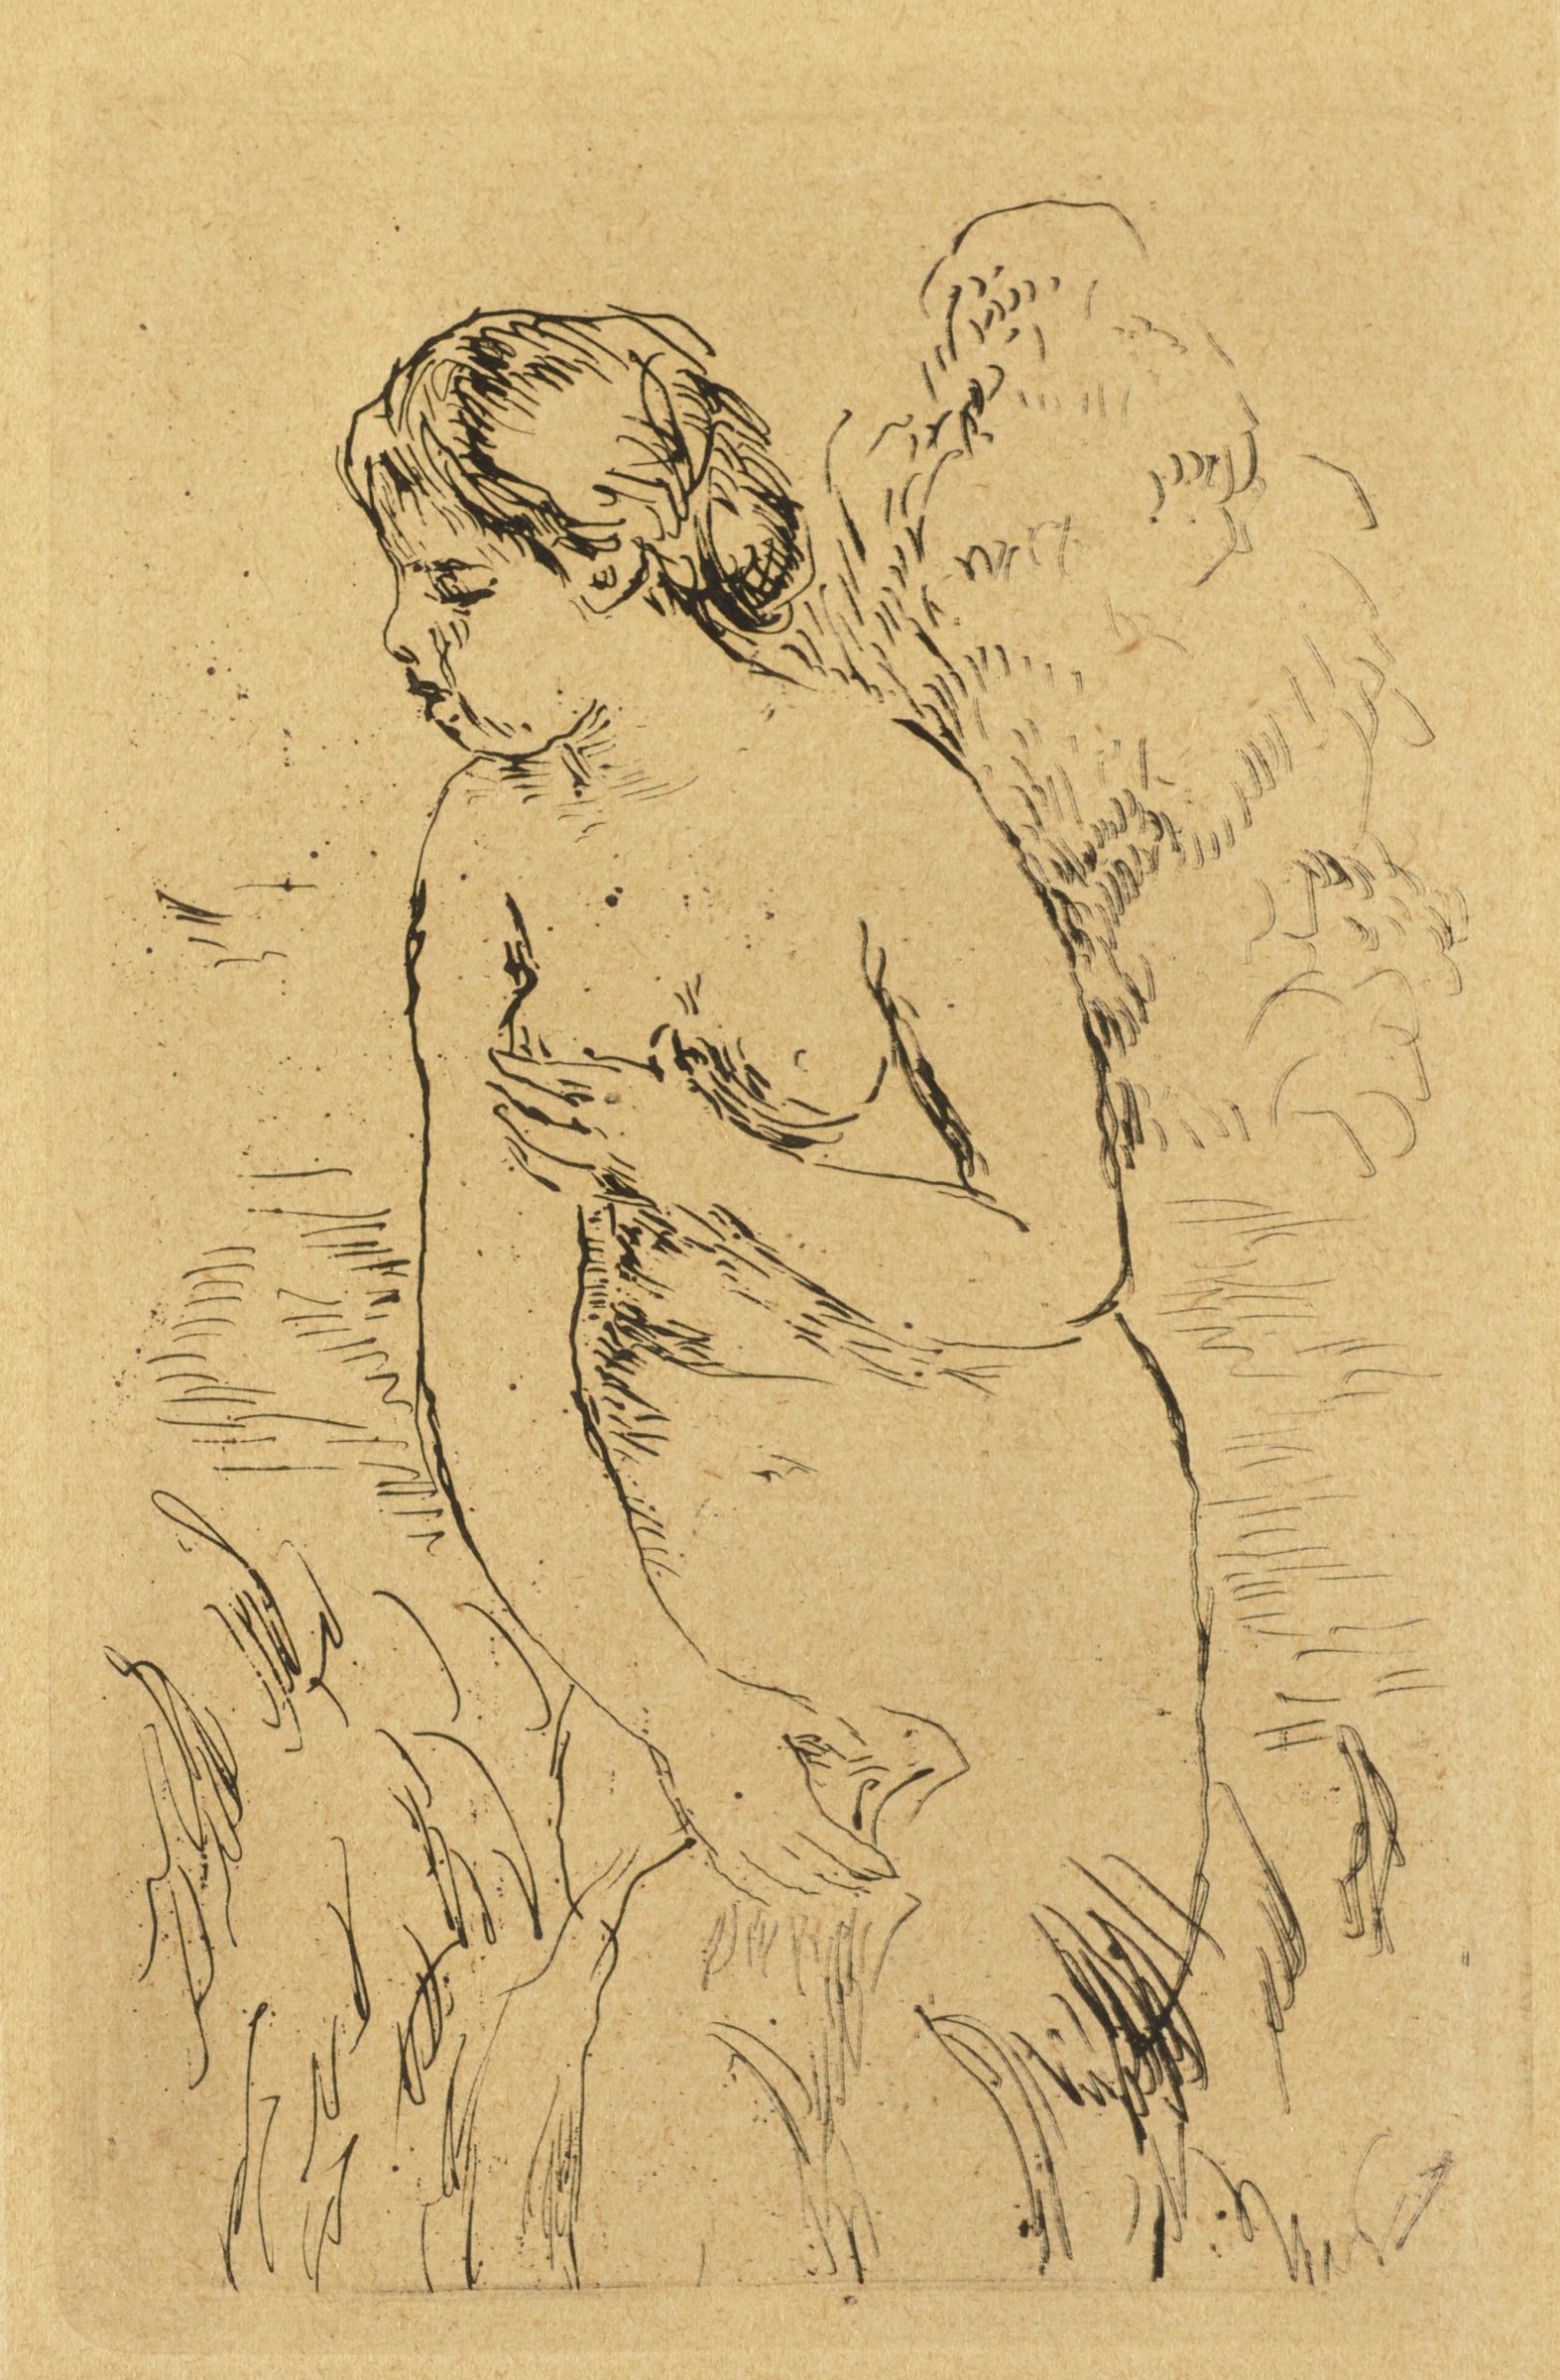 Sketch of nude woman, who partially covers herself, standing near a body of water and vegetation.